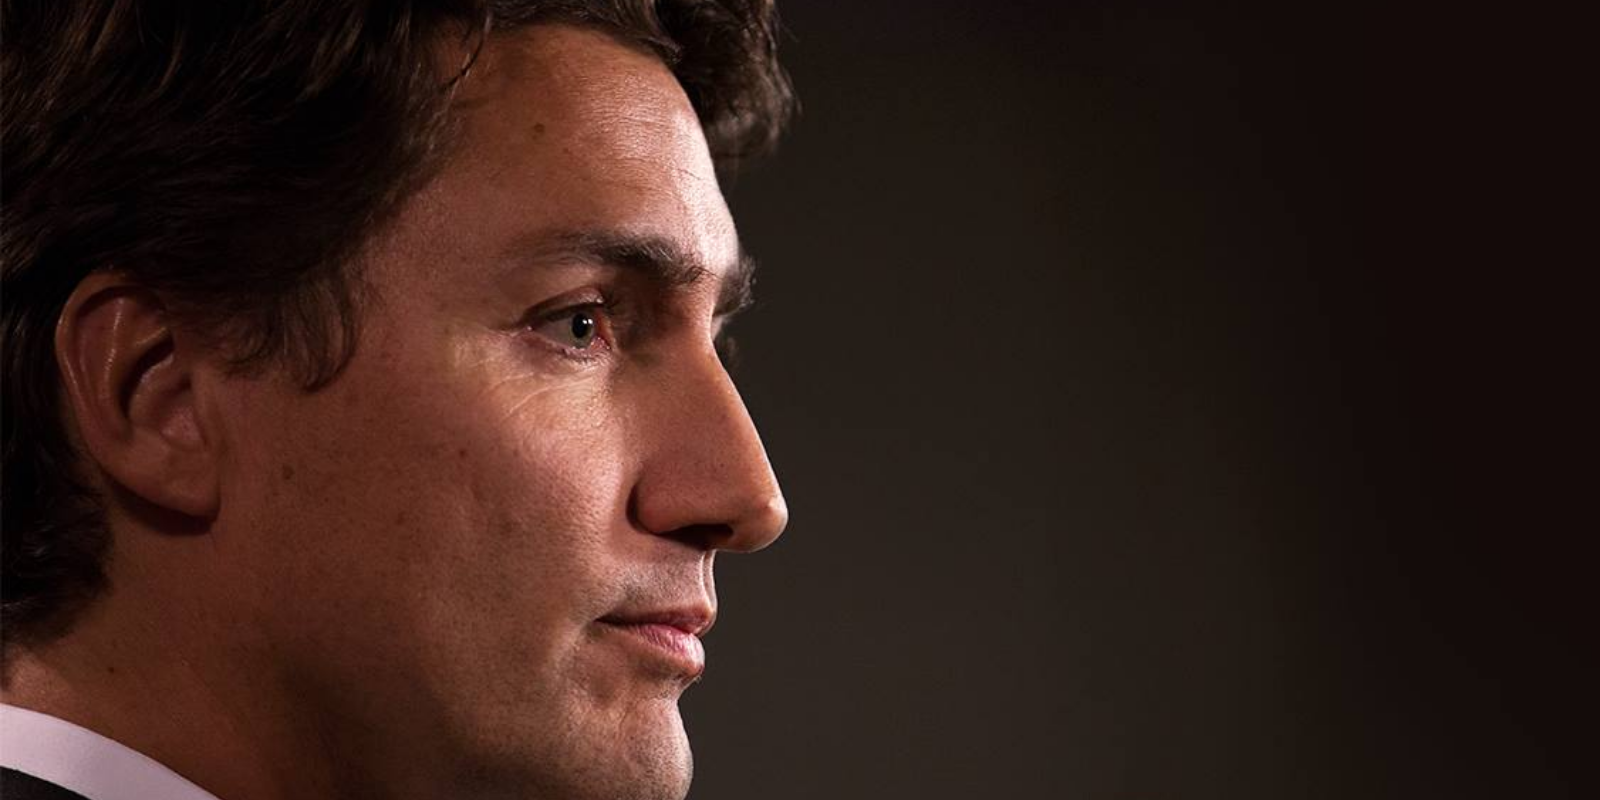 Trudeau says Canada is committing genocide, but refuses to say the same about China